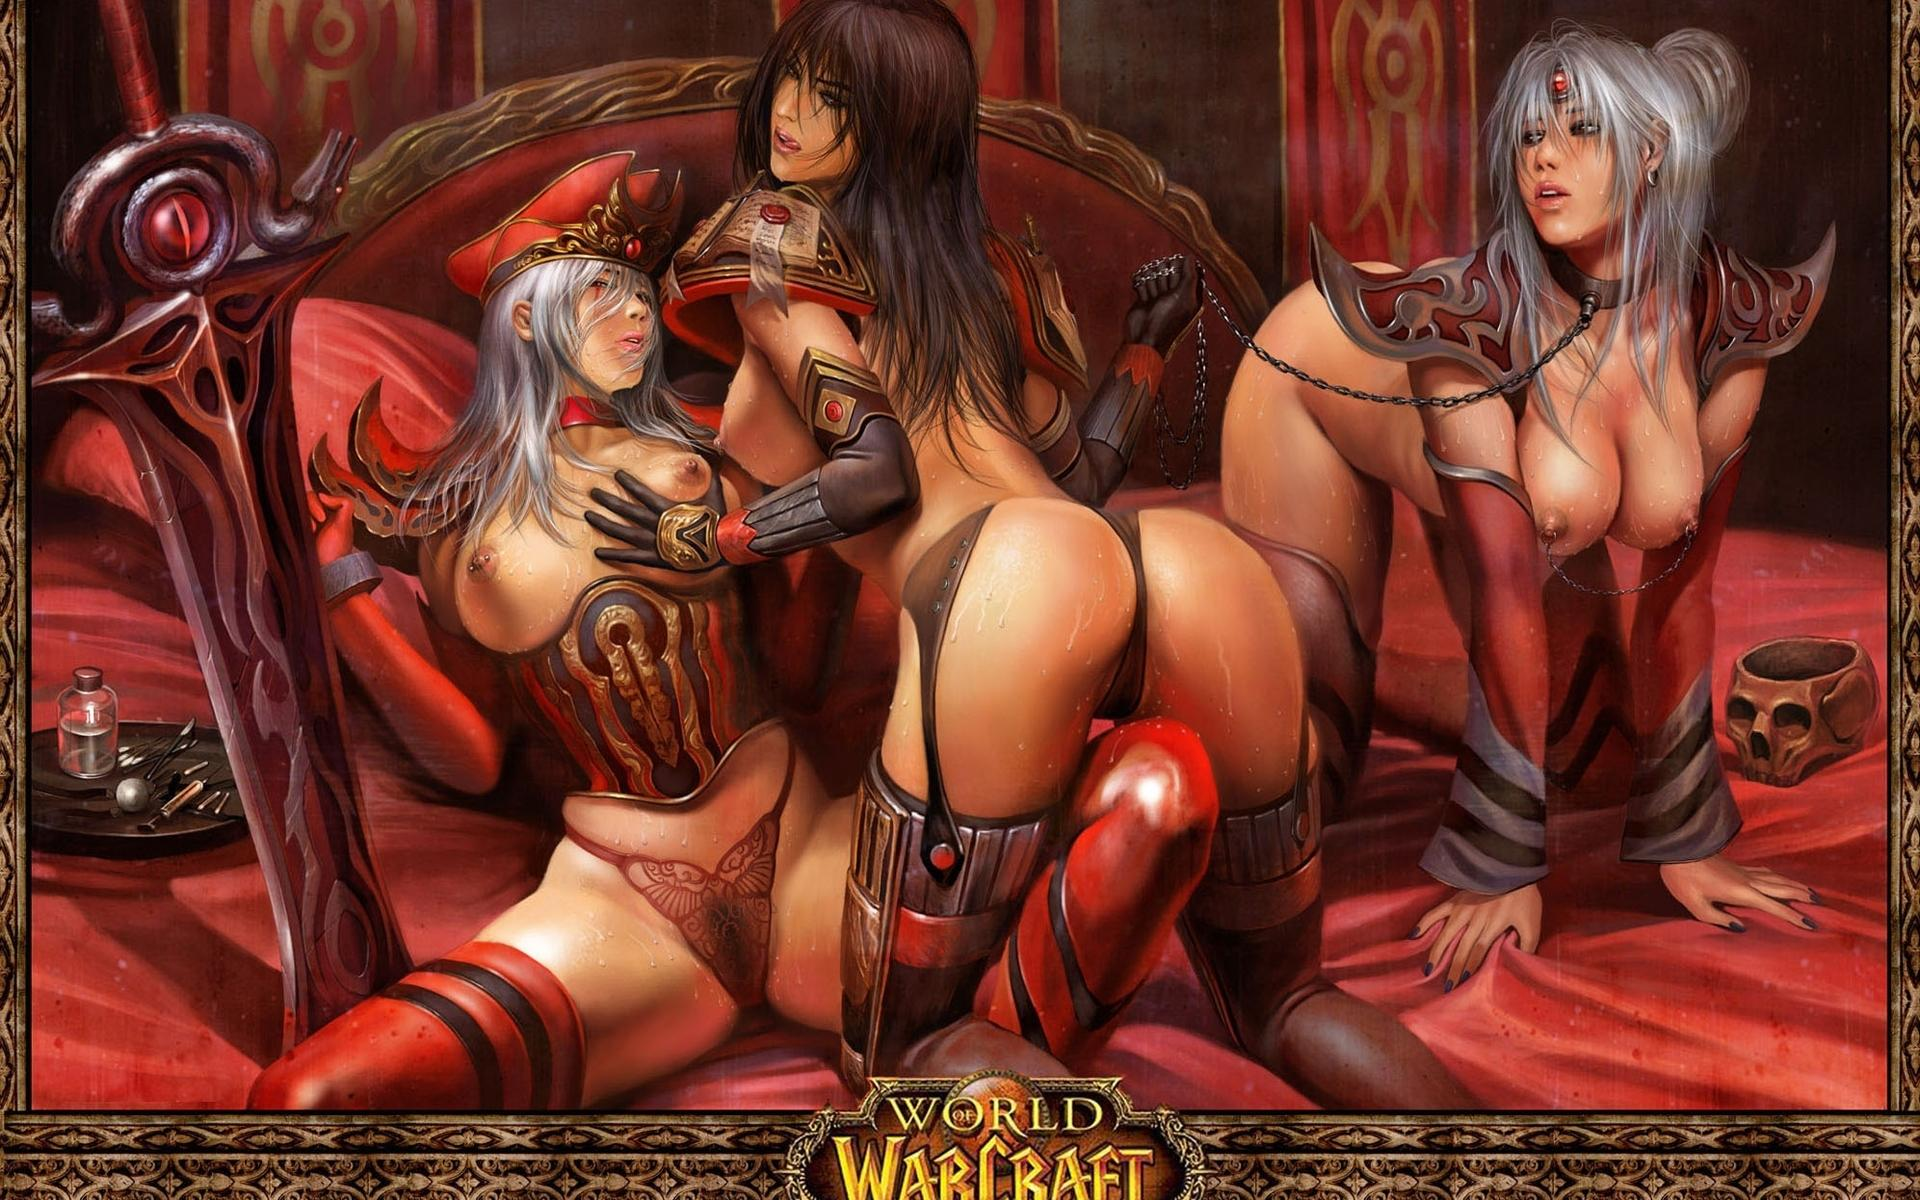 World of warcraft naked art exposed pics